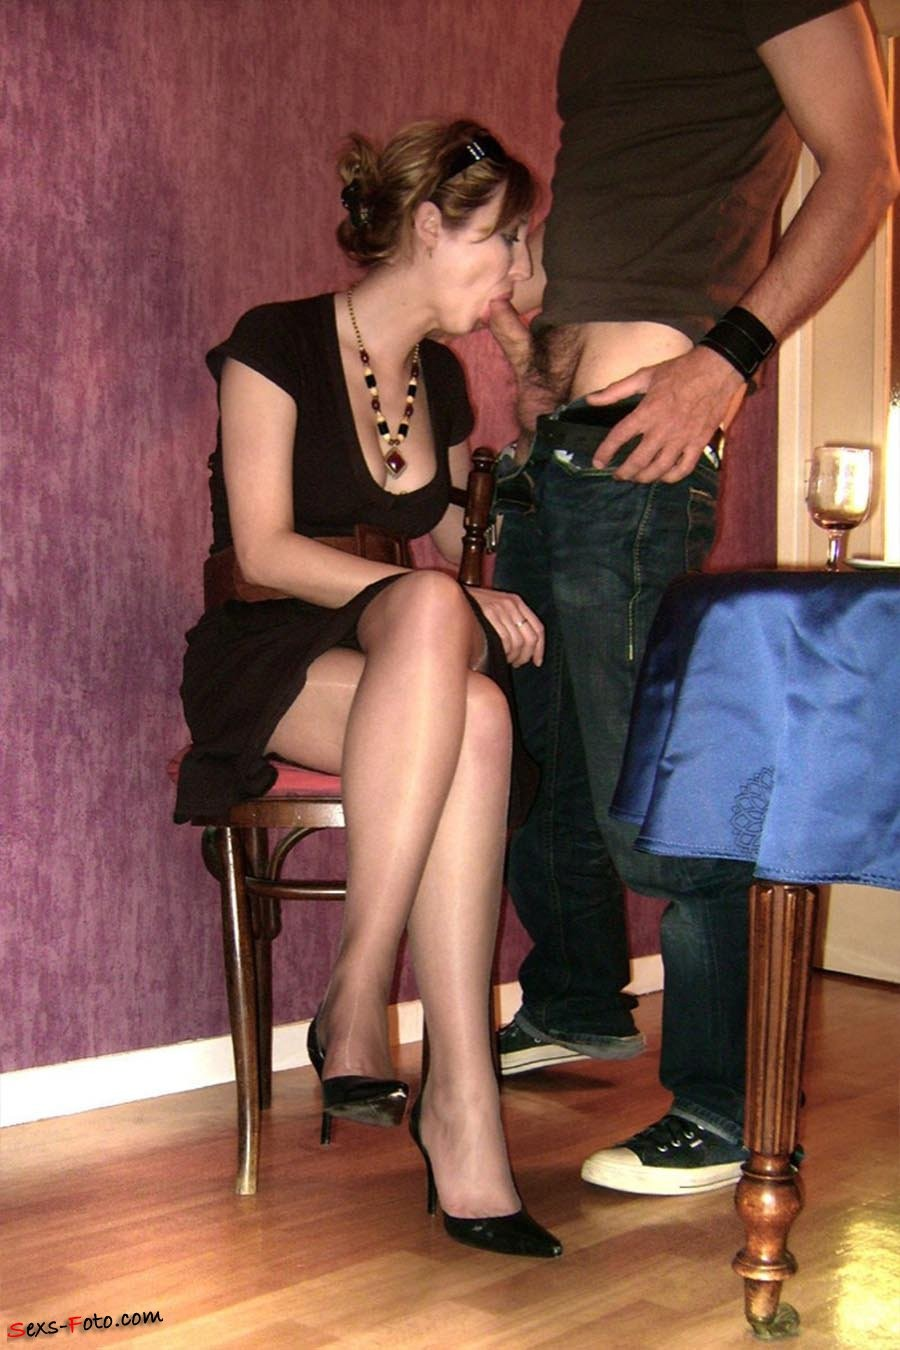 housewives with vibrators – Femdom